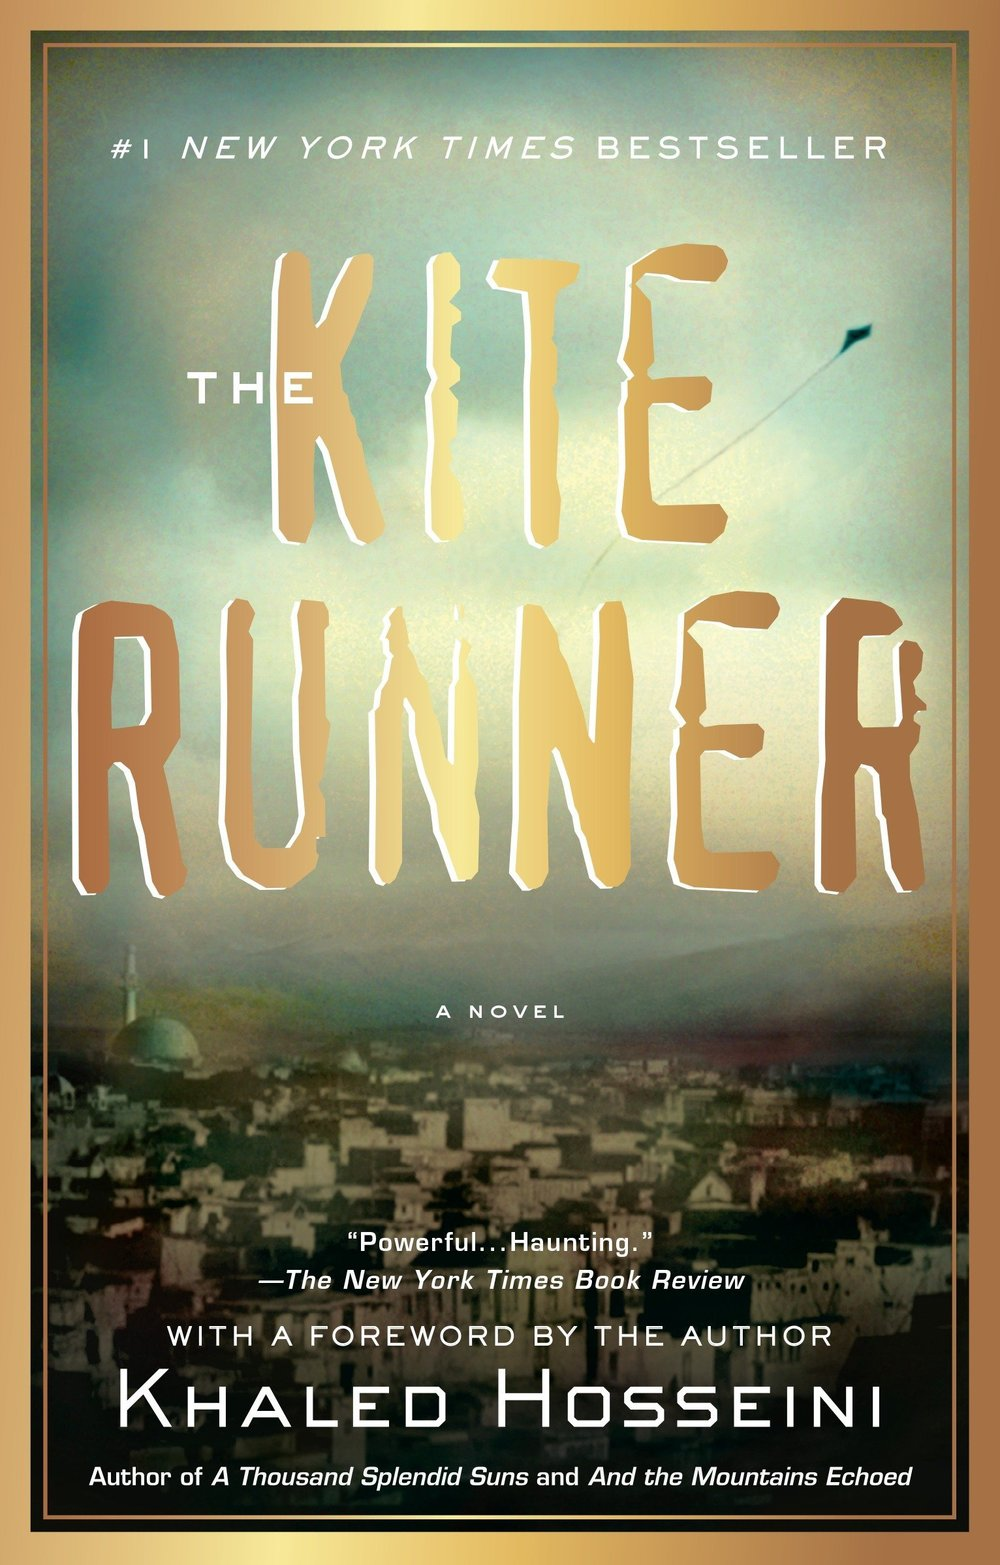 The Kite Runner by Khaled Hosseini.jpg